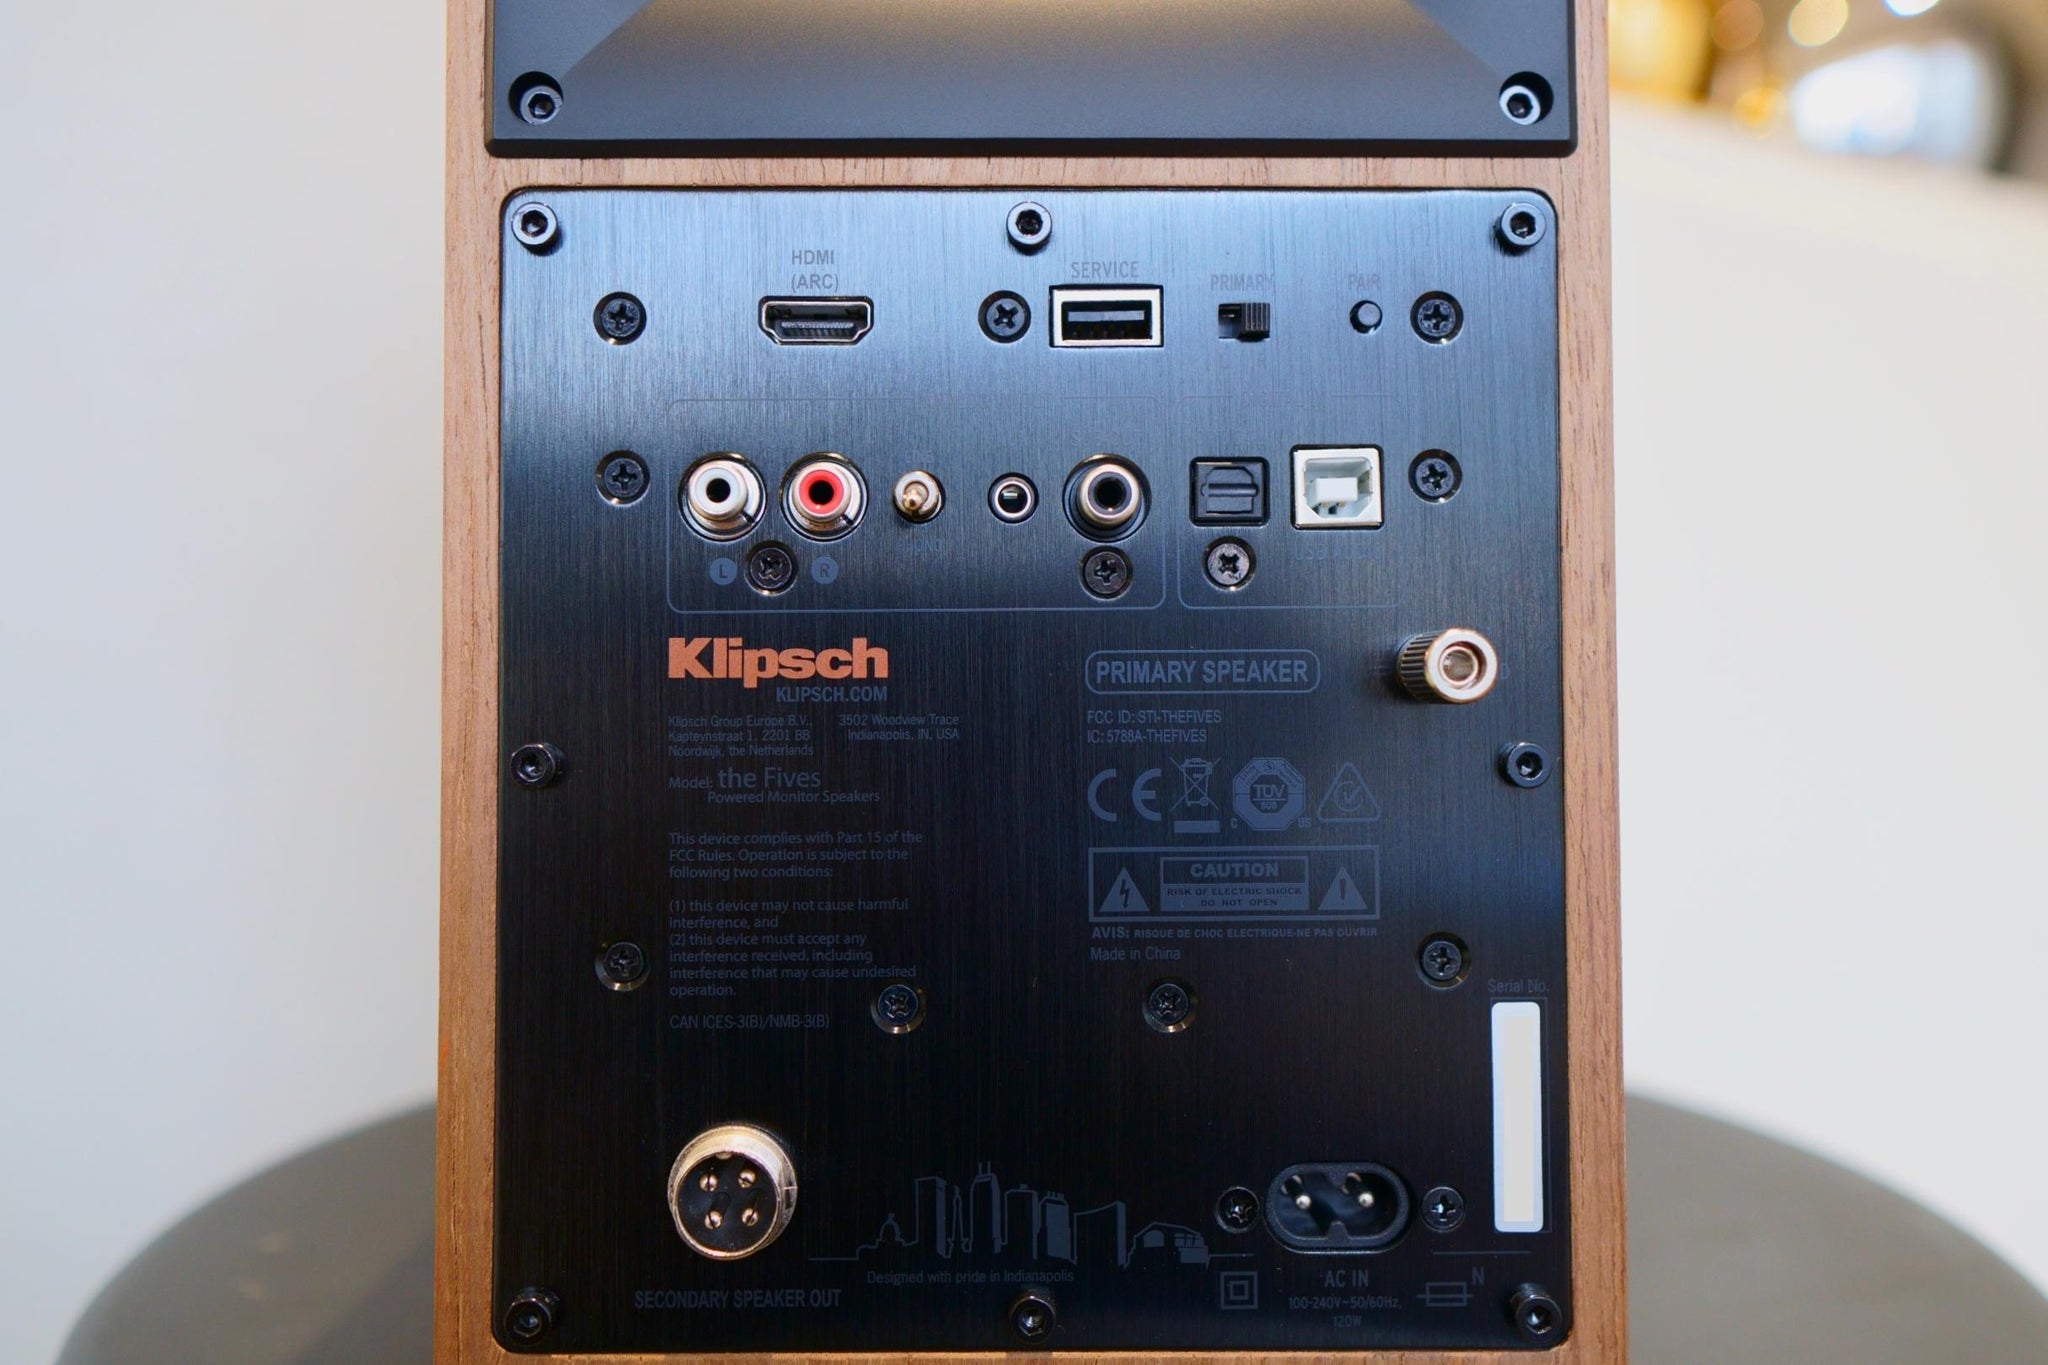 Back panel of Klipsch The Fives showcasing all input connectivity options.